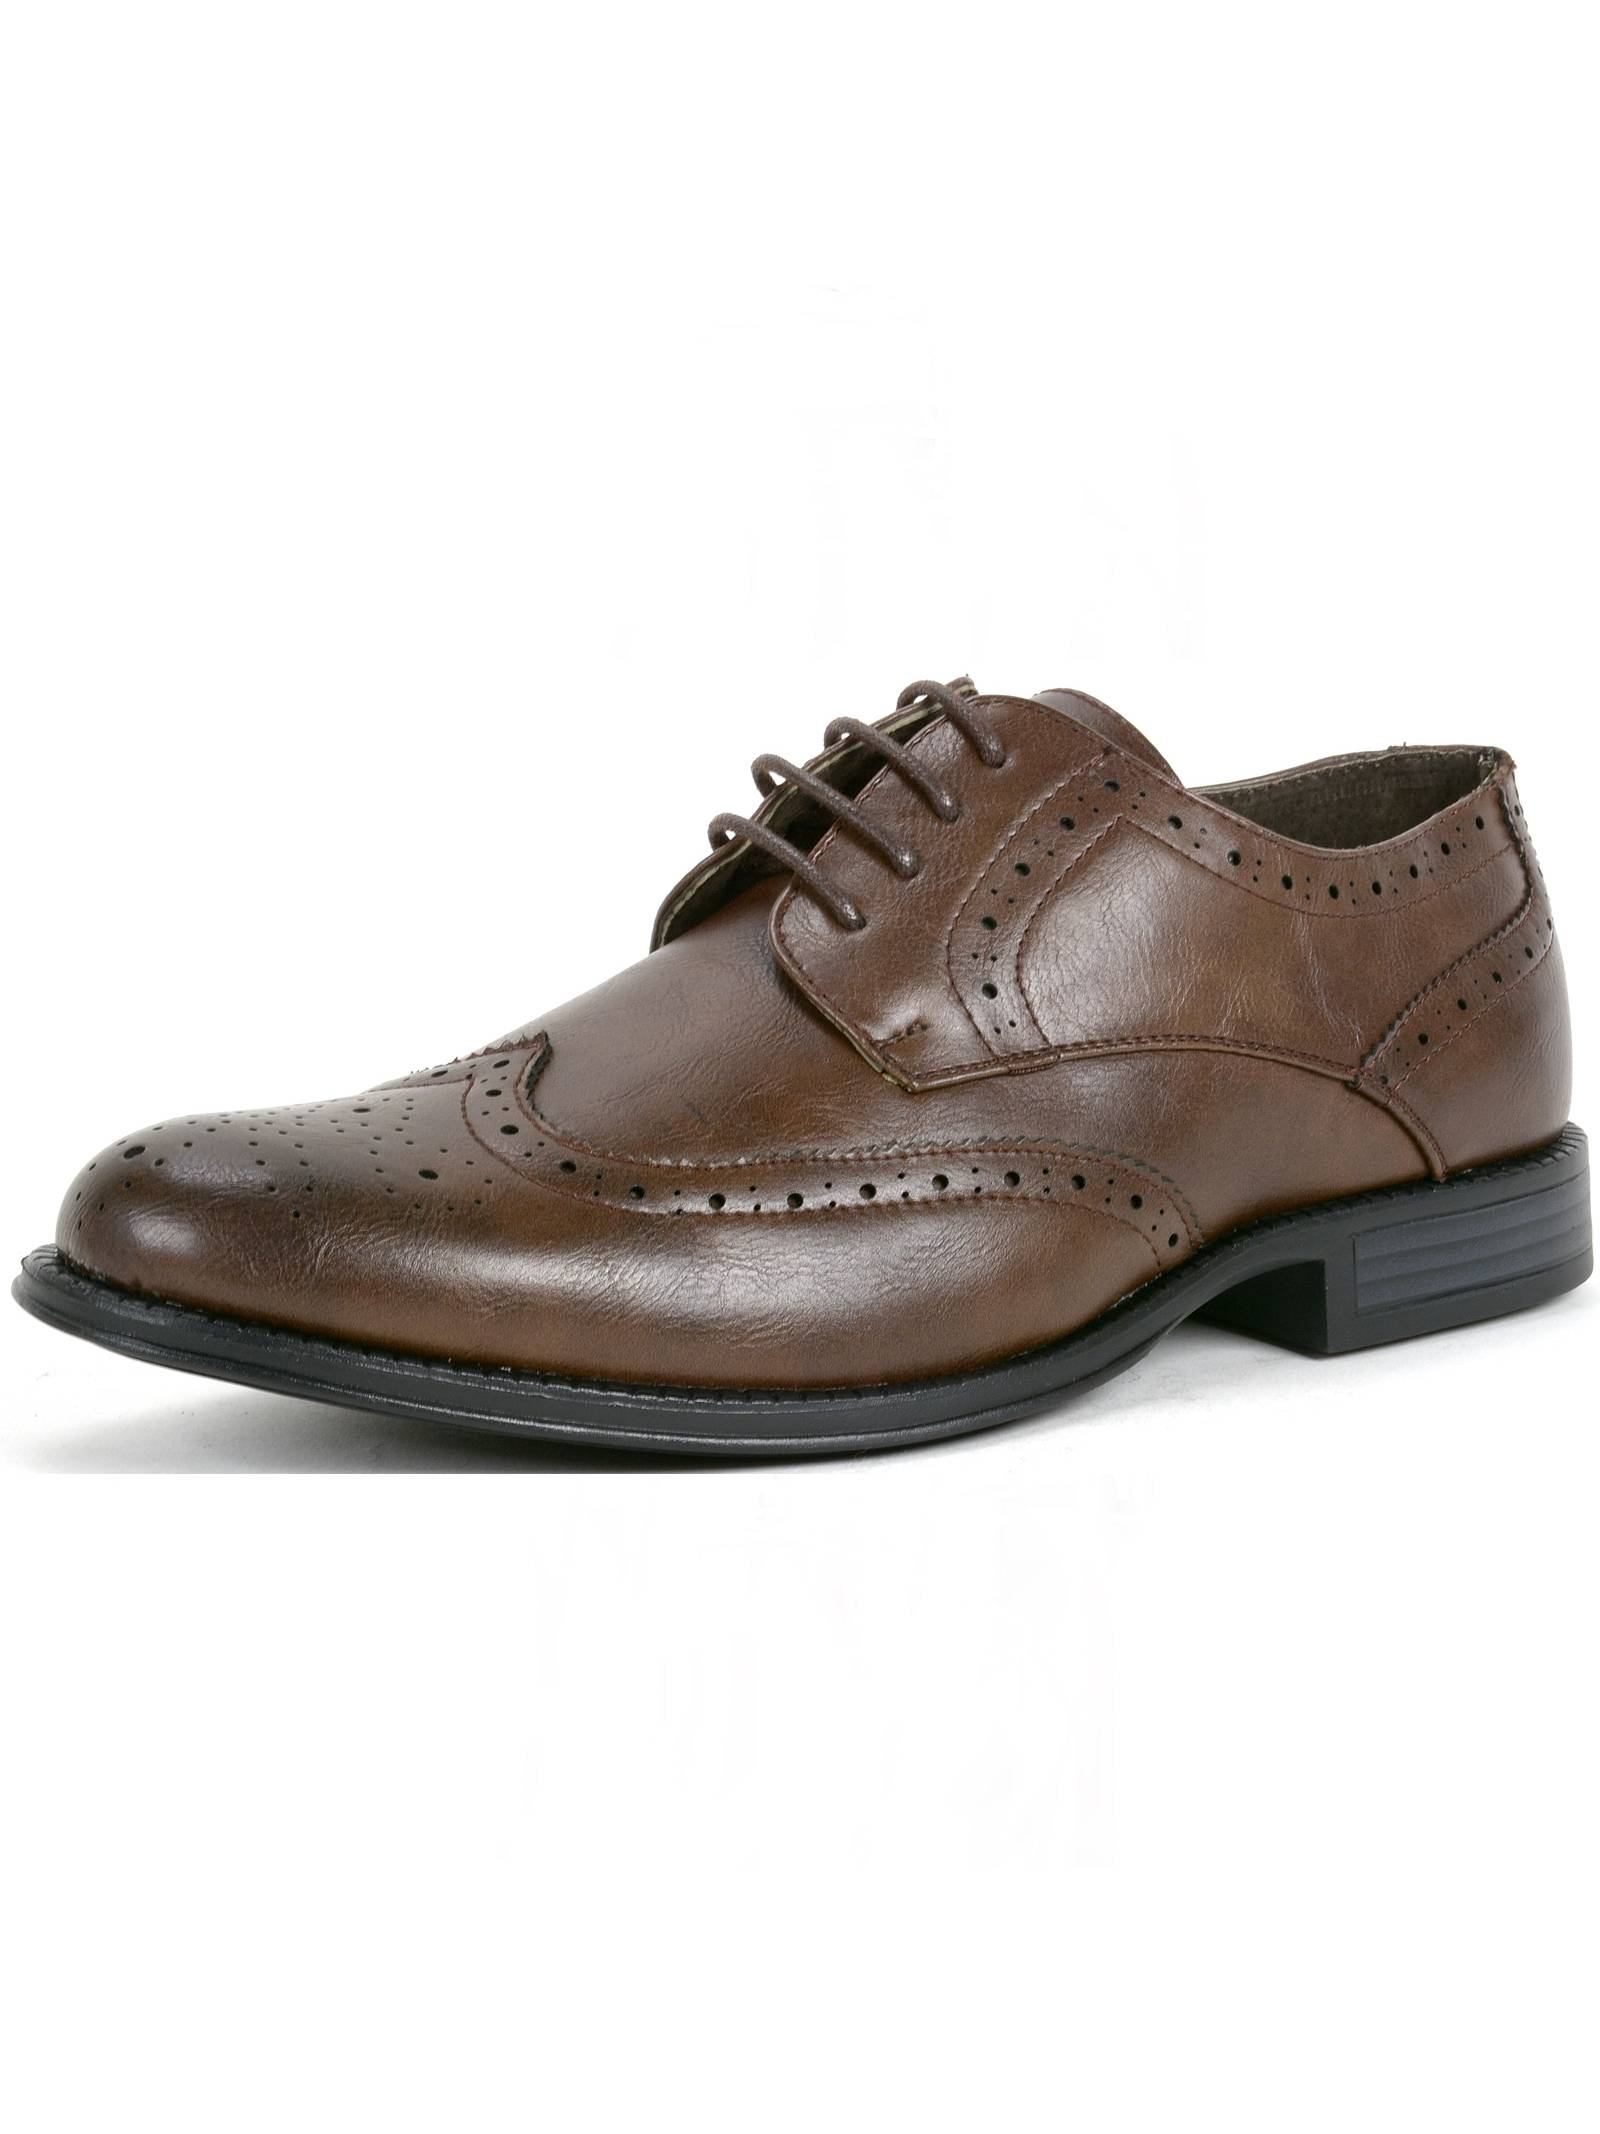 Alpine Swiss Zurich Mens Oxfords Brogue Medallion Wing Tip Lace Up Dress Shoes